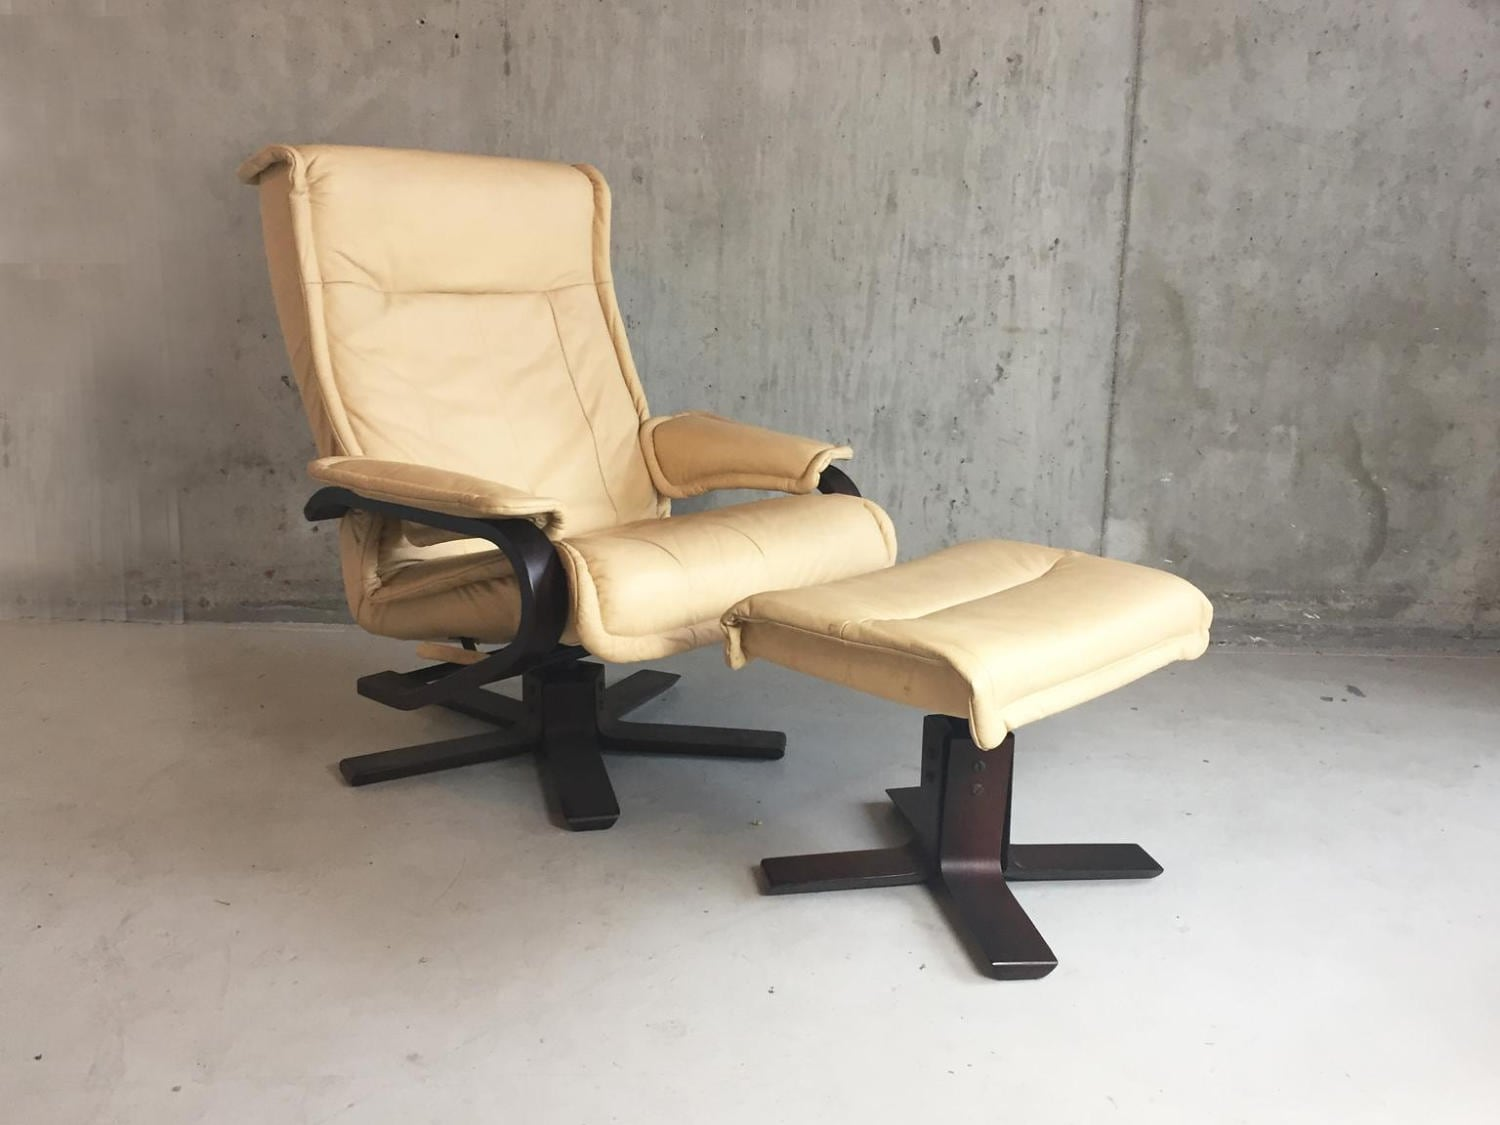 1970s mid century Norwegian leather reclining armchair and footstool